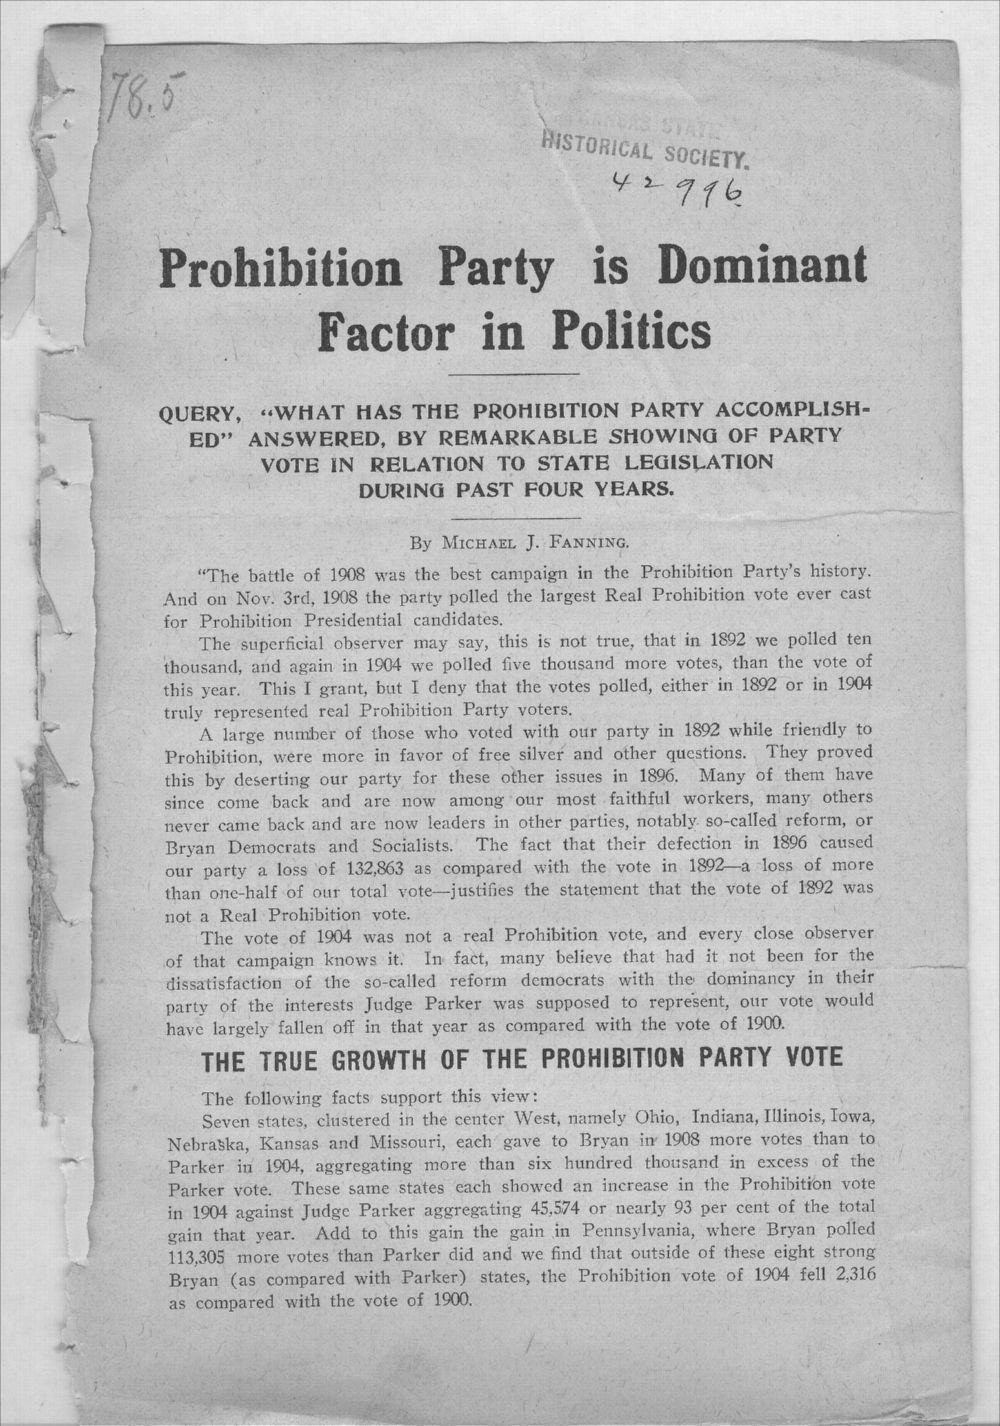 Prohibition Party is dominant factor in politics - 1